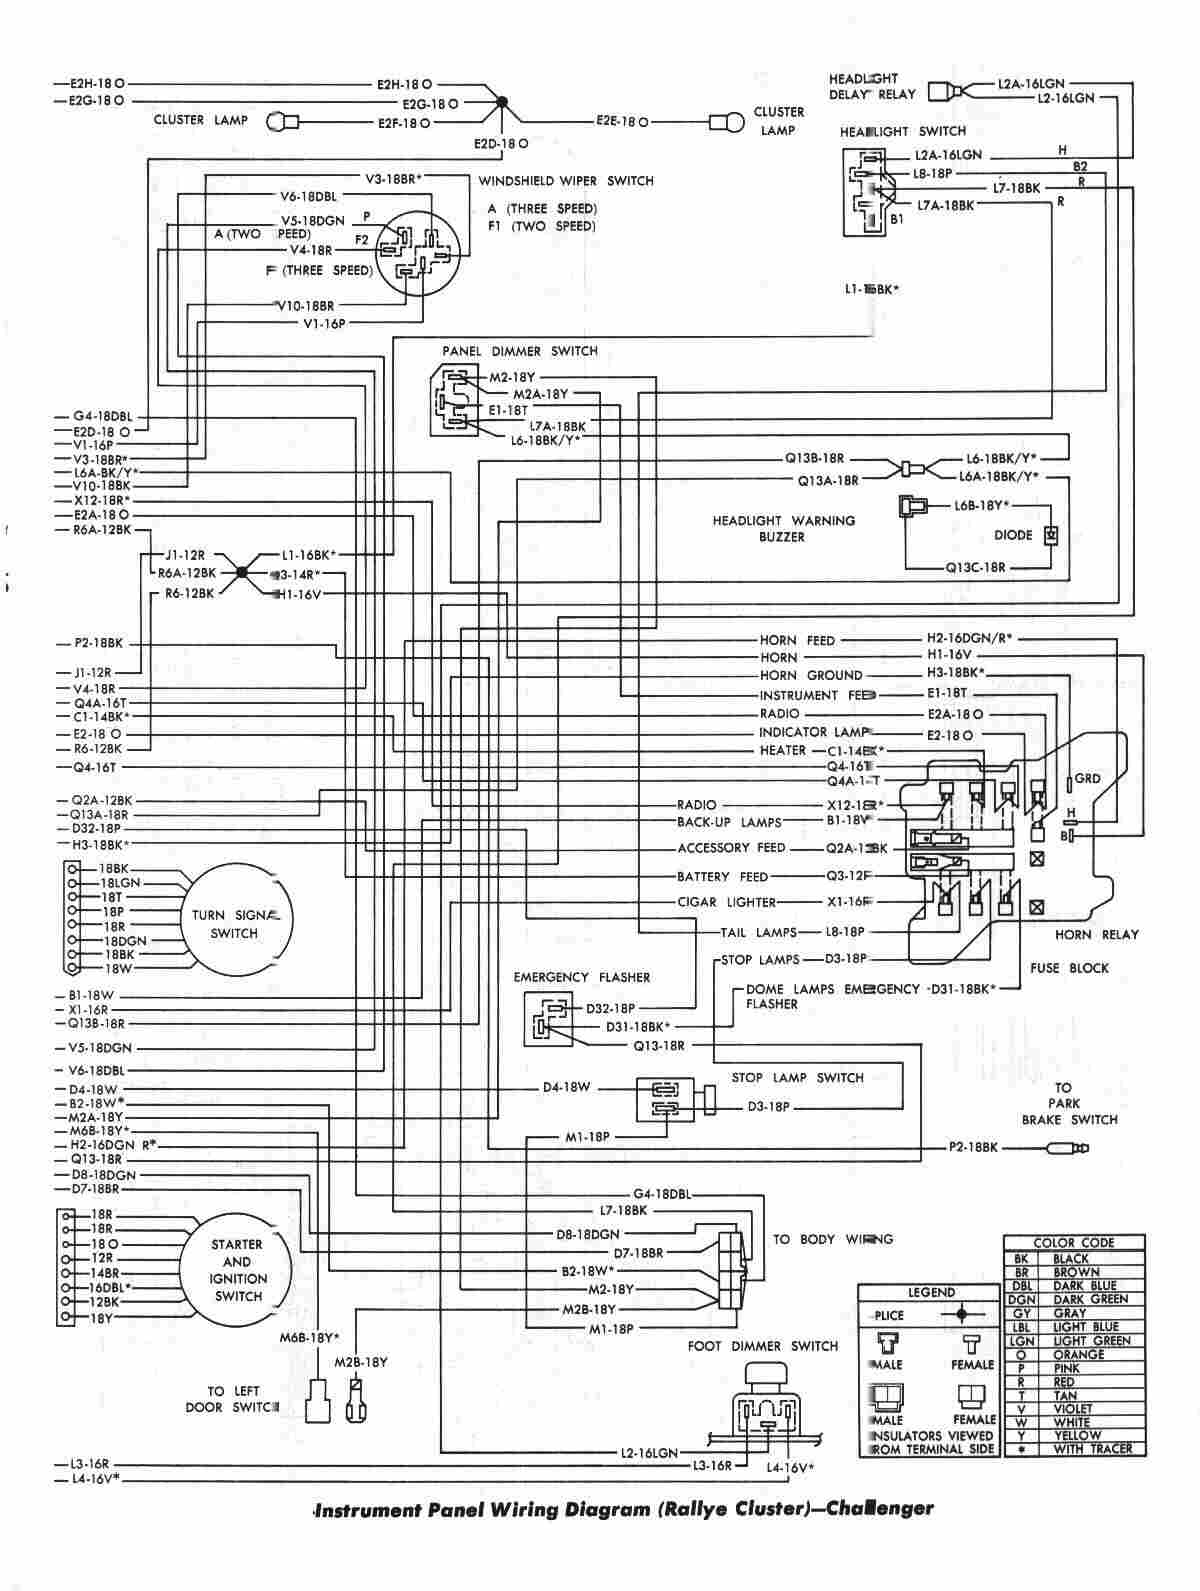 Dodge+Challenger+1970+Instrument+Panel+Wiring+Diagram+(Rallye+Cluster) dodge challenger 1970 instrument panel wiring diagram (rallye 1970 dodge charger wiring diagram at gsmx.co